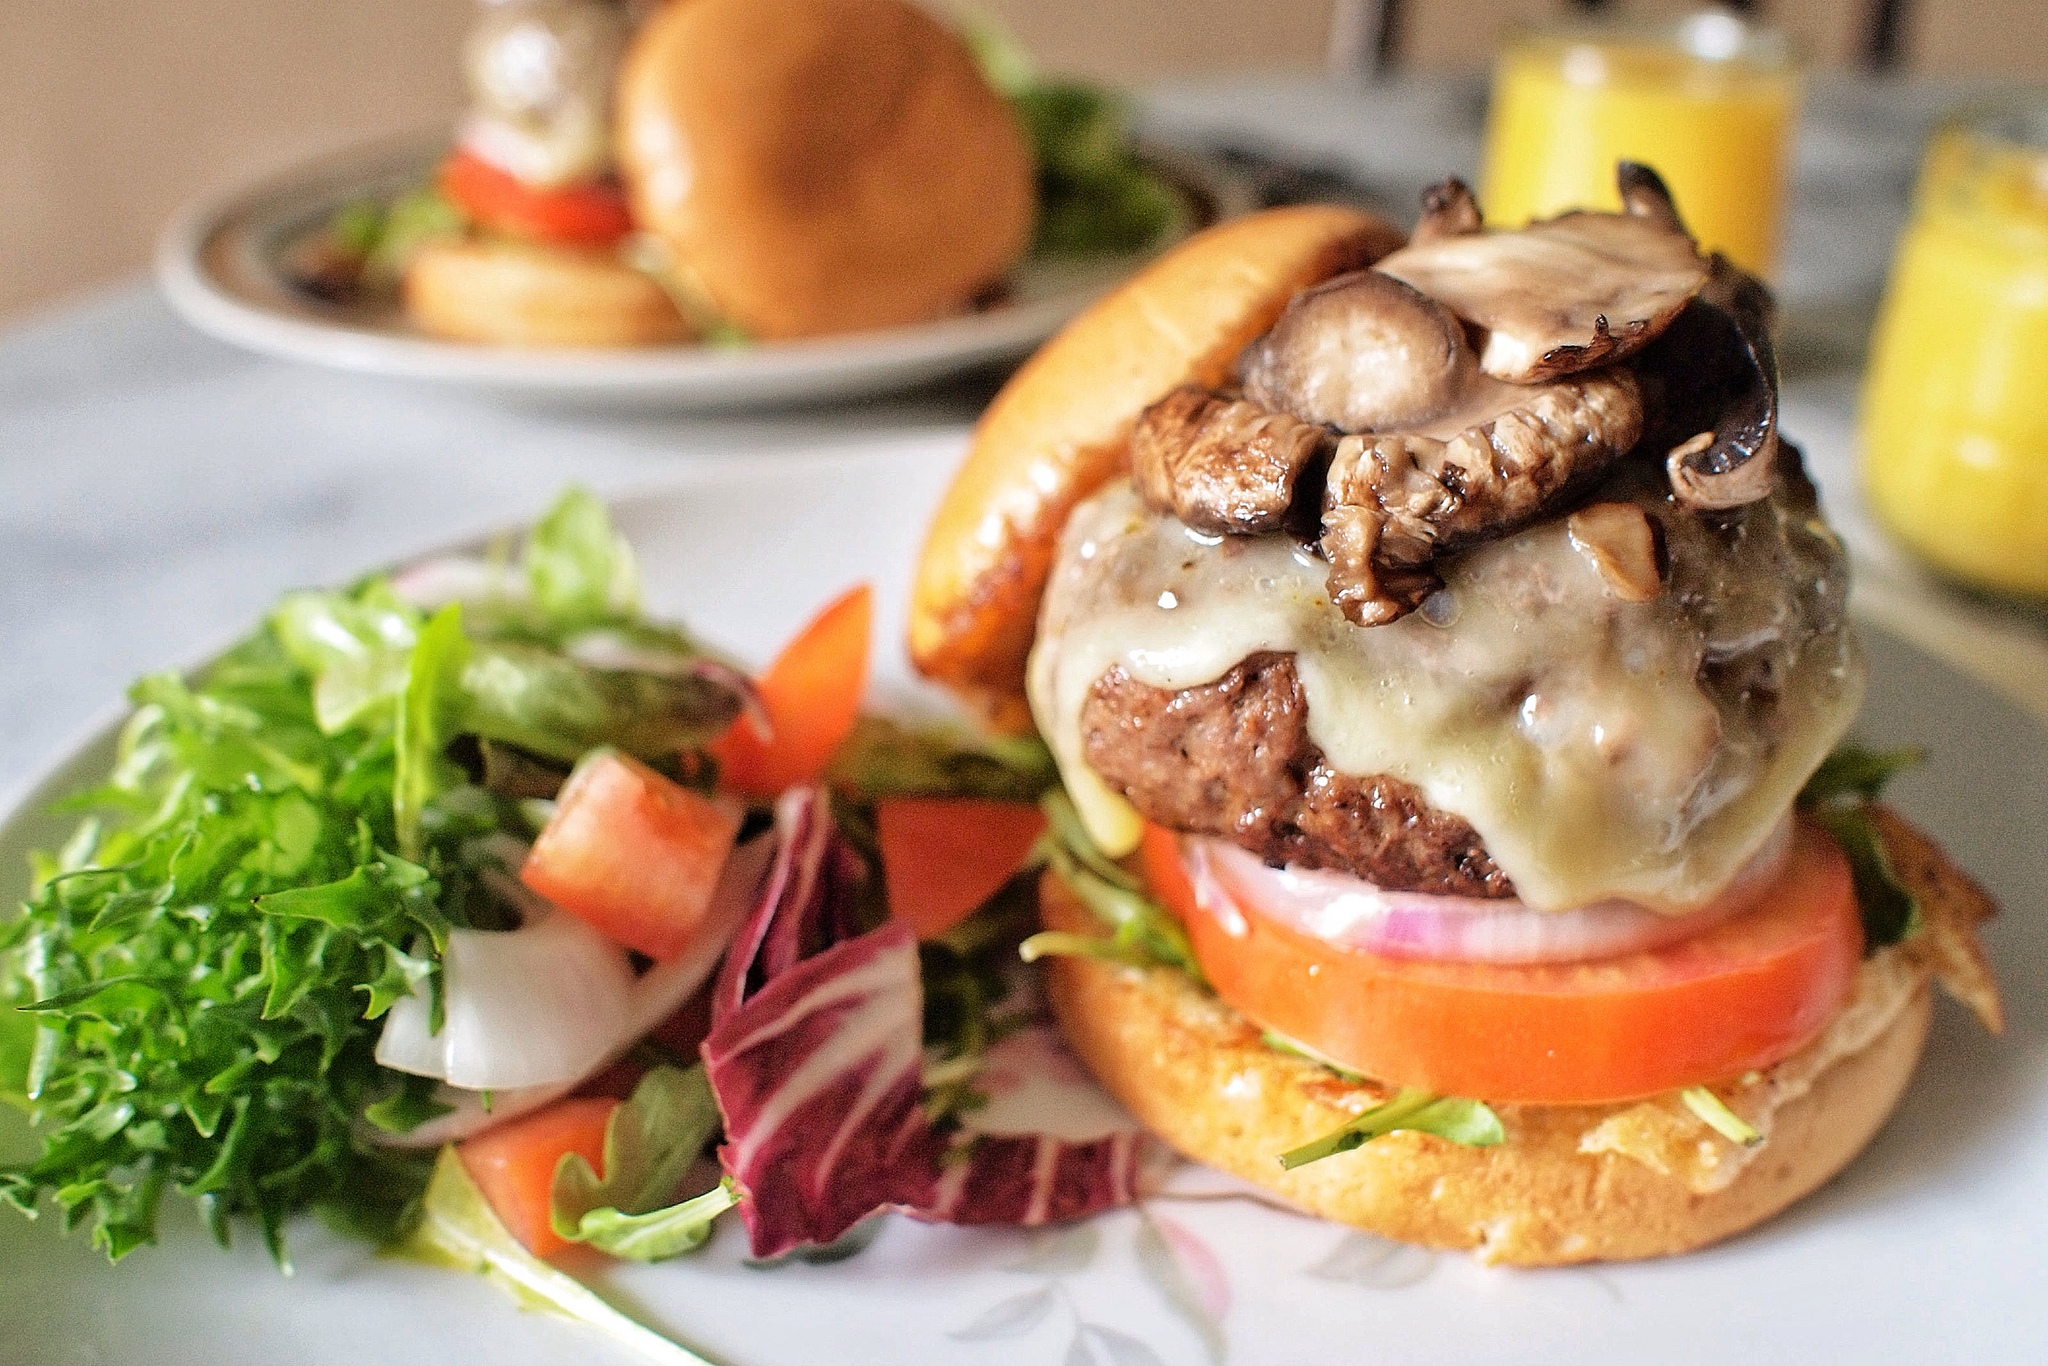 Burgers and Brunch©JonathanLin/Flickr